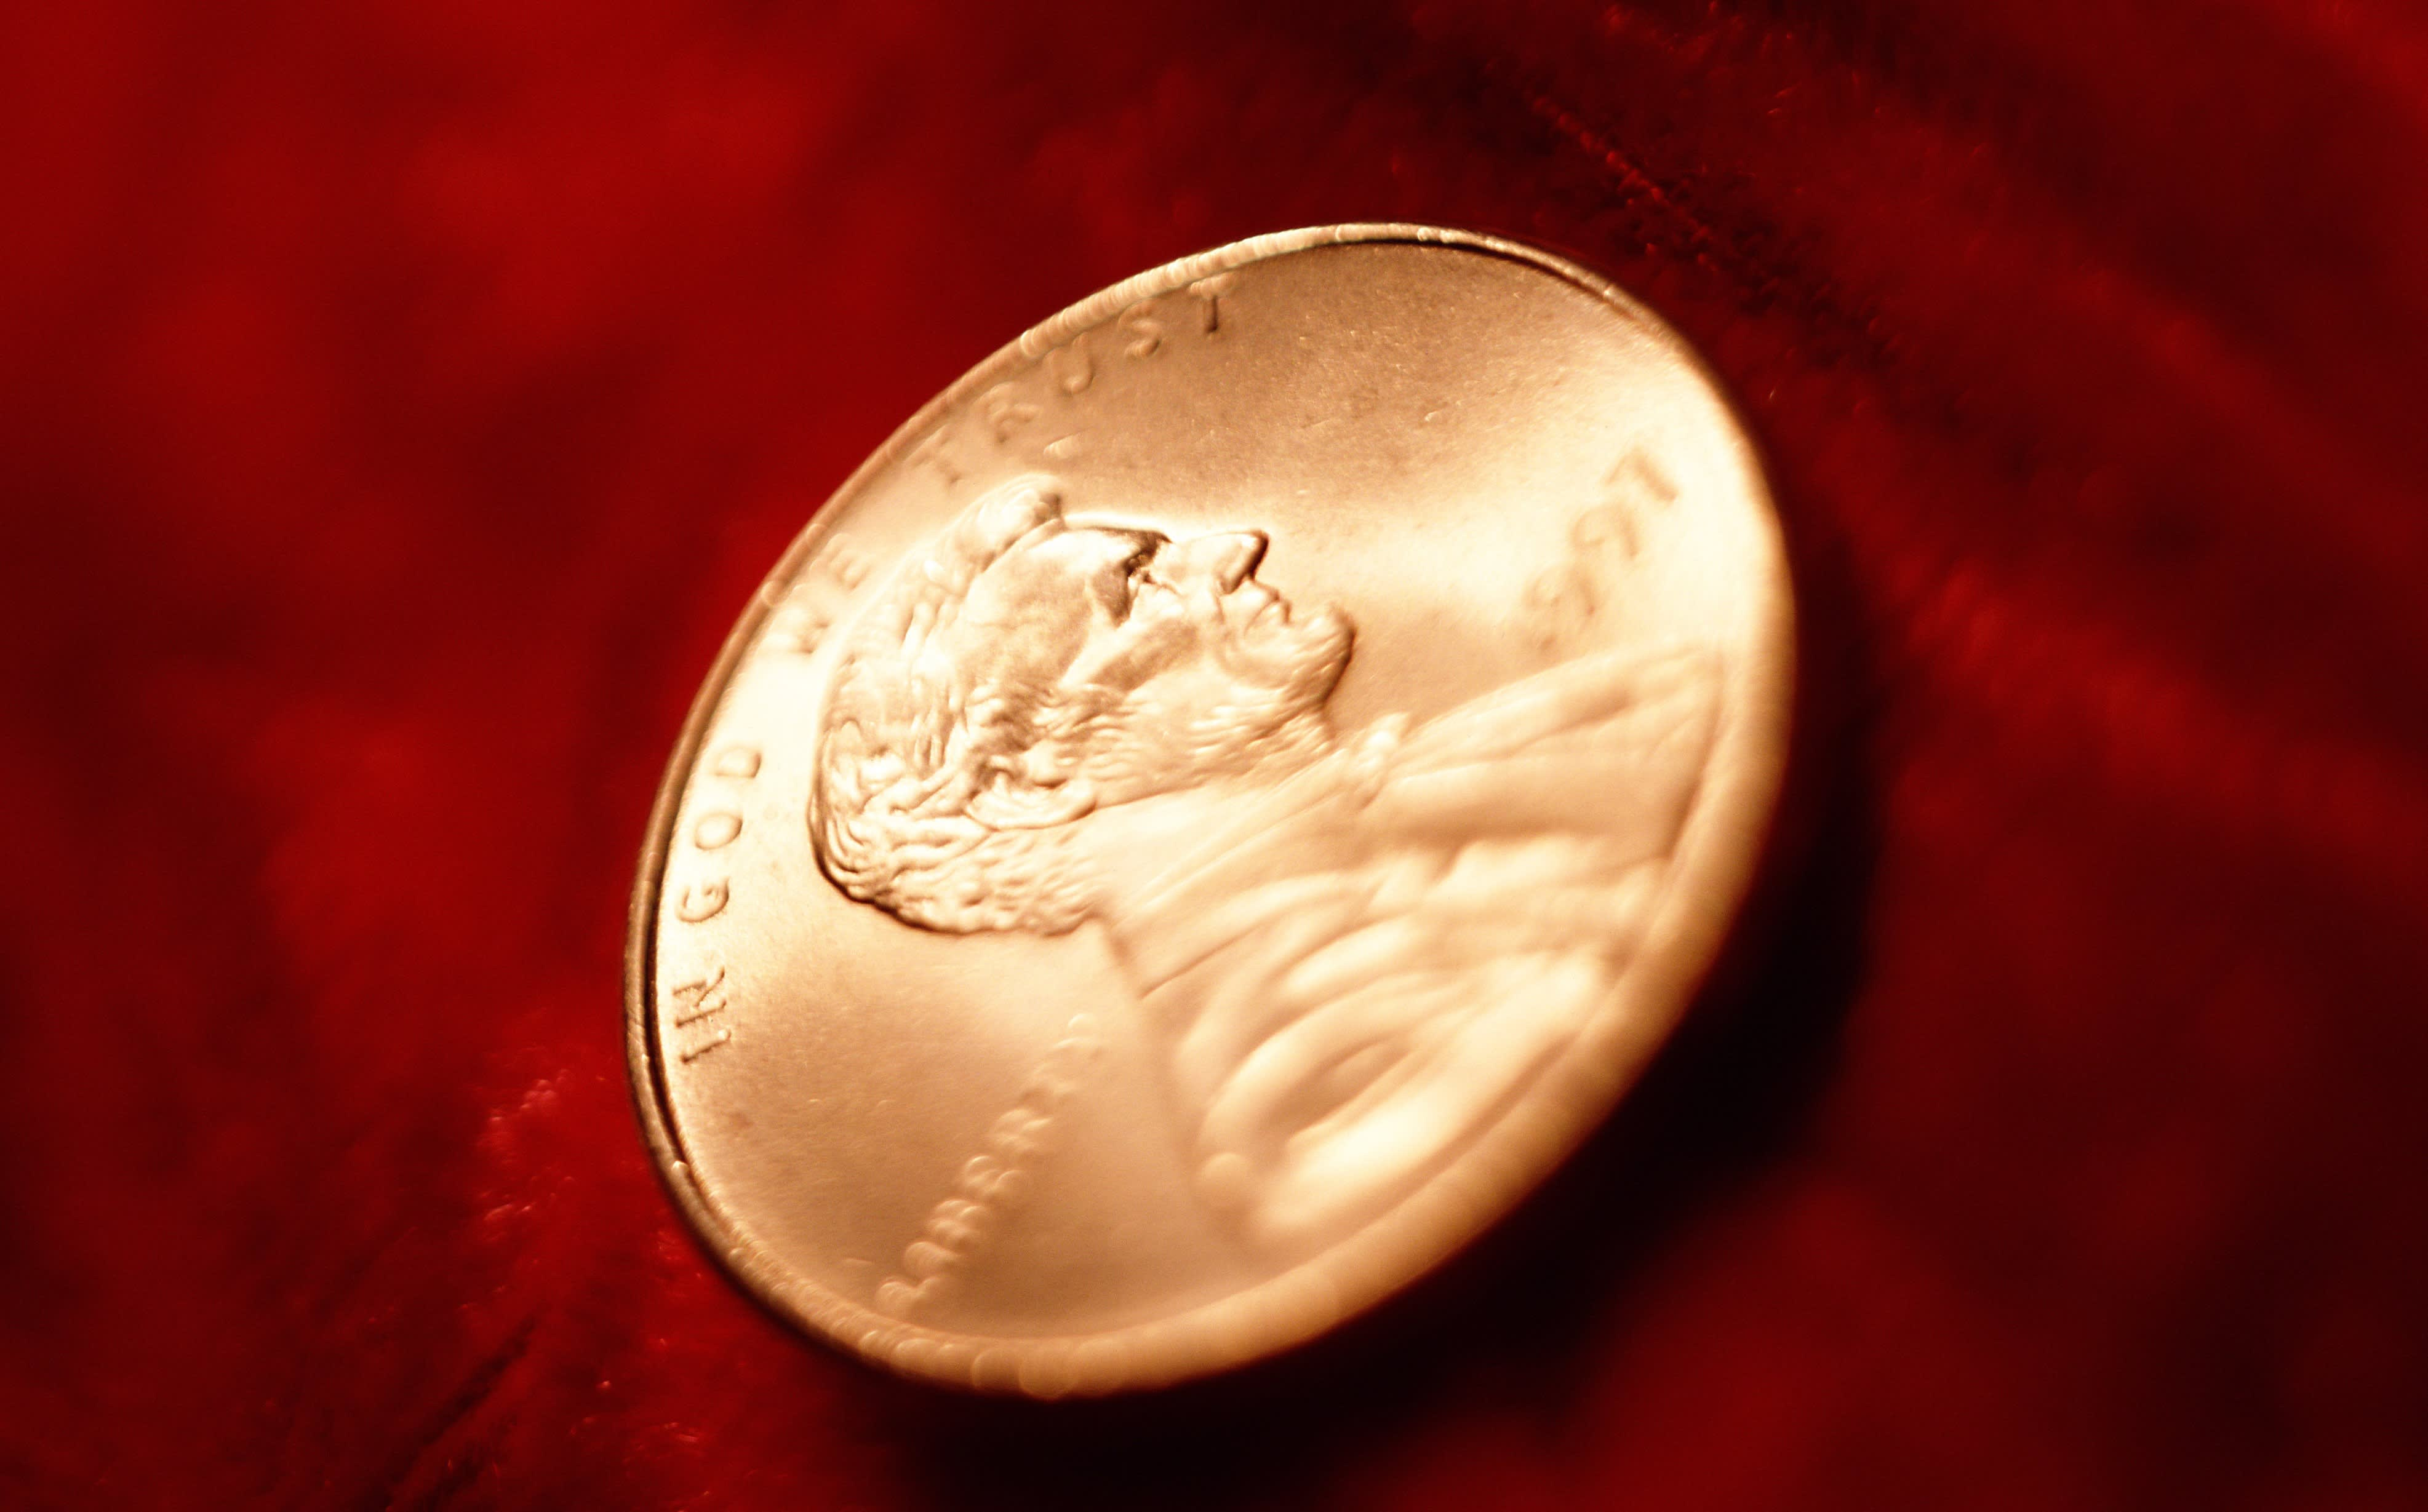 2015 20 cent  proof coin